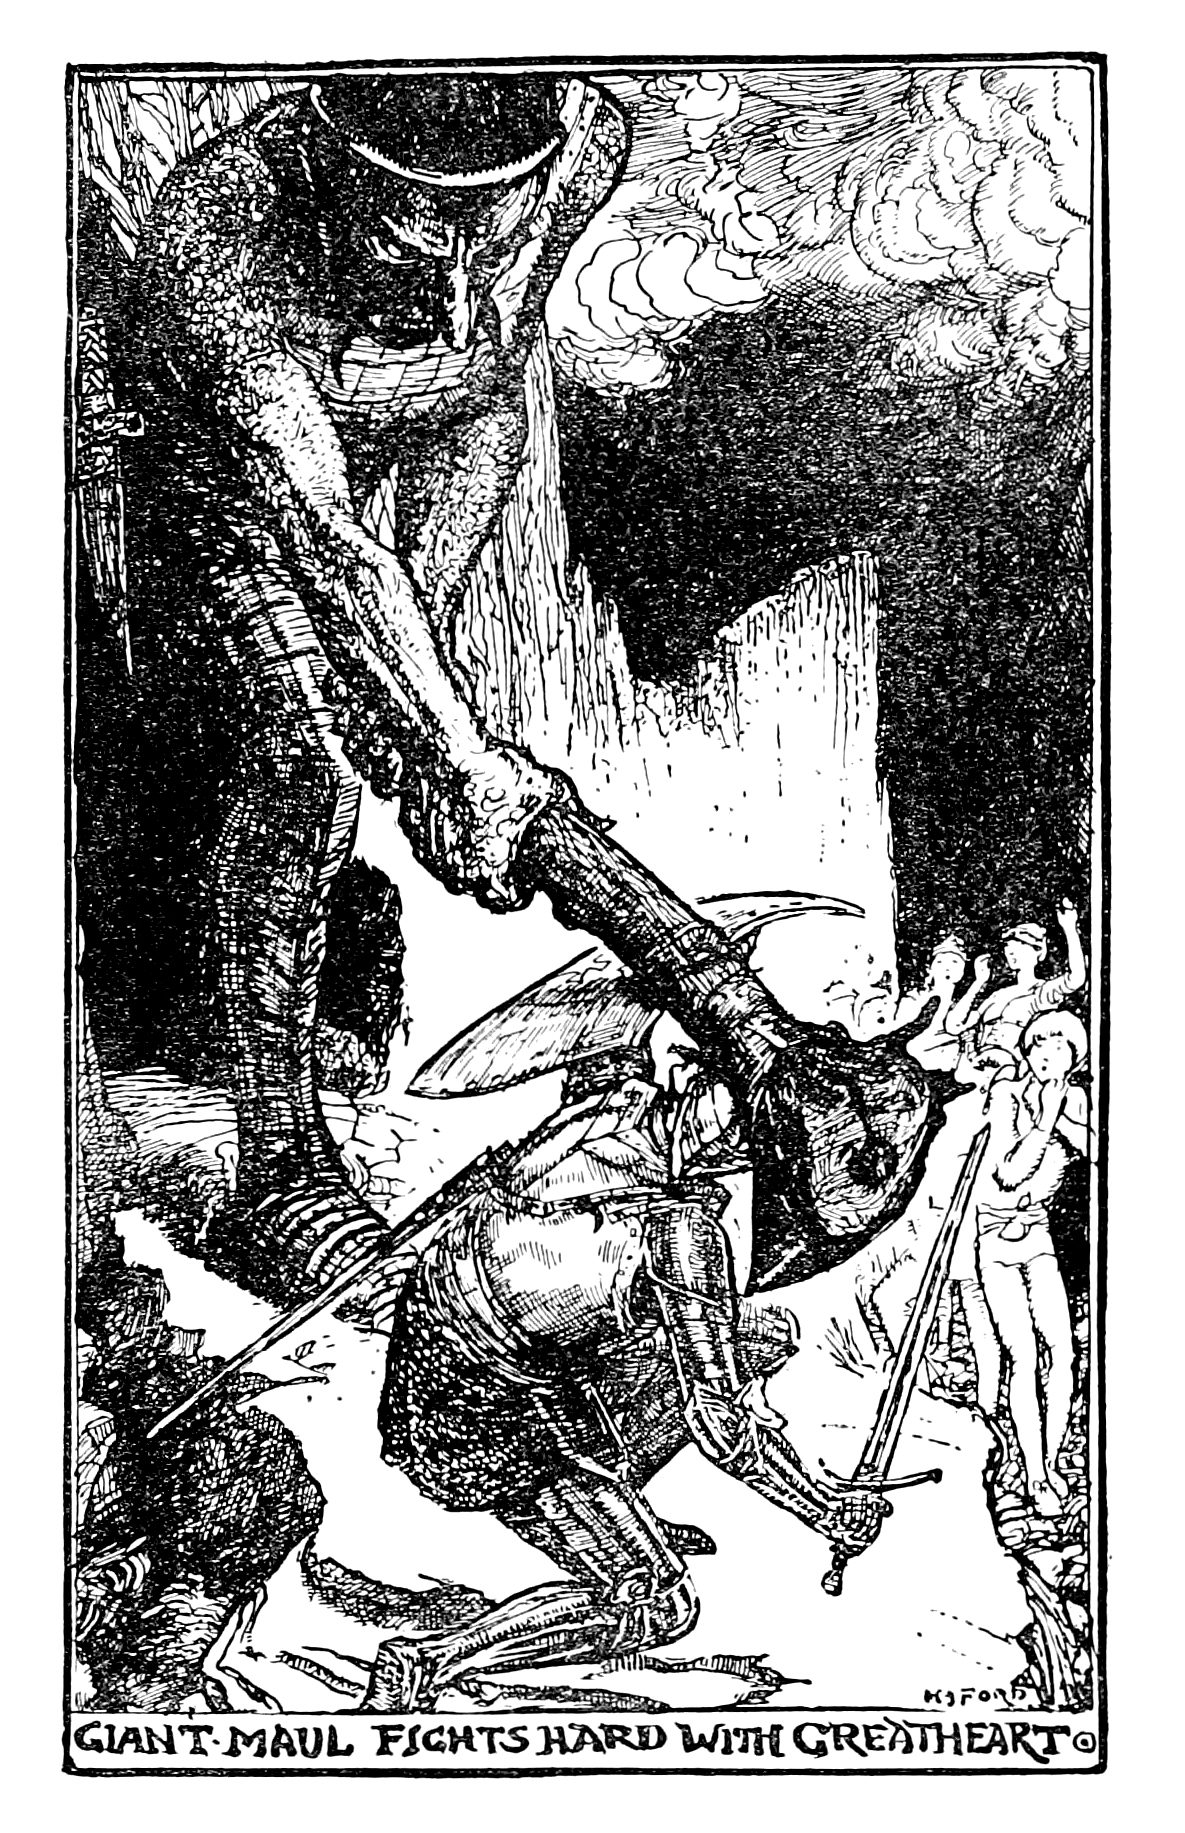 Henry Justice Ford - The pilgrim's progress by John Bunyan ; an edition for children arranged by Jean Marian Matthew, 1922 (illustration 5)